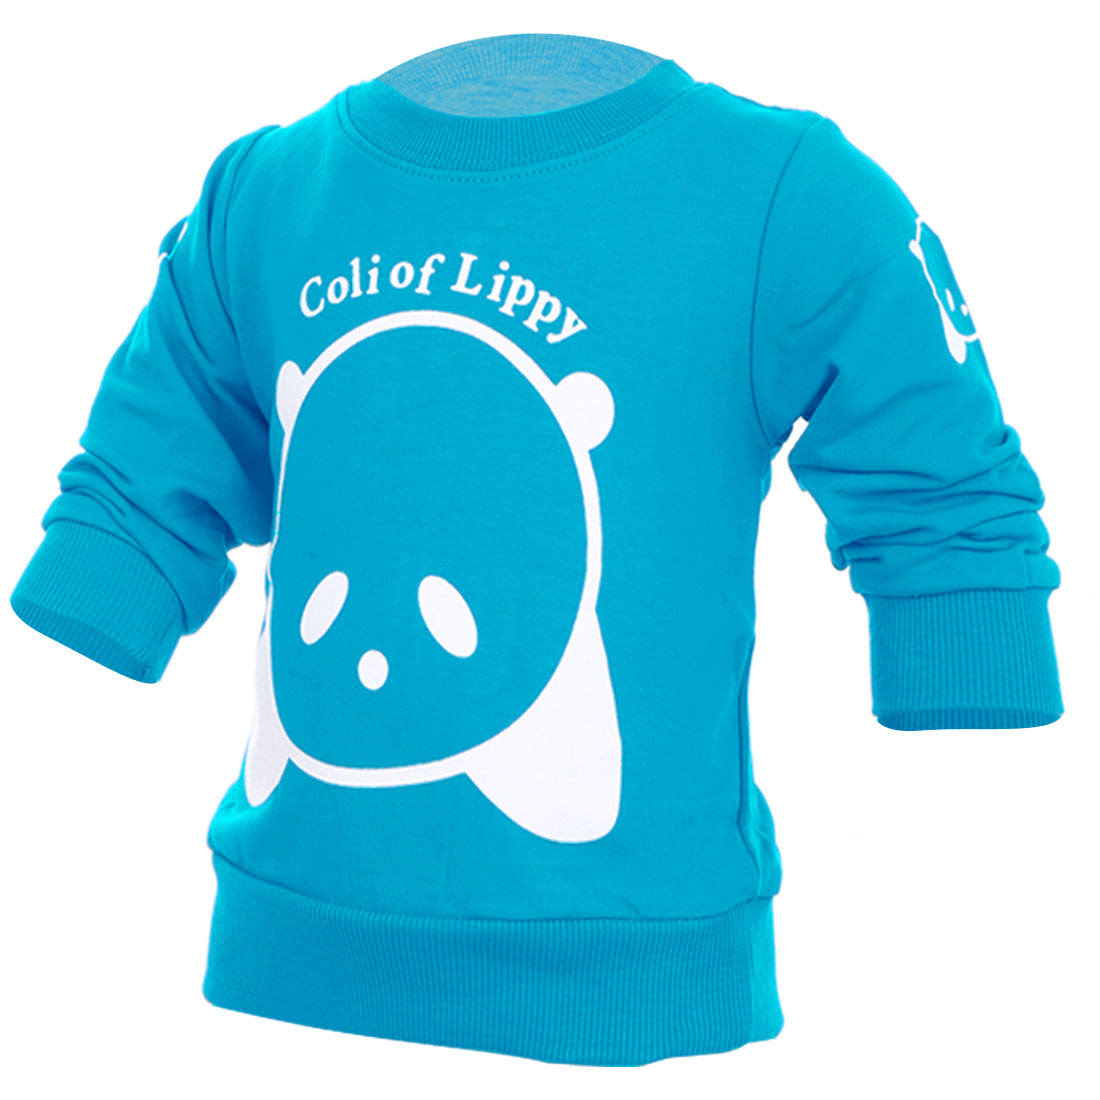 Boys Girls Stylish Round Neck Sweatshirt Turquoise 3T